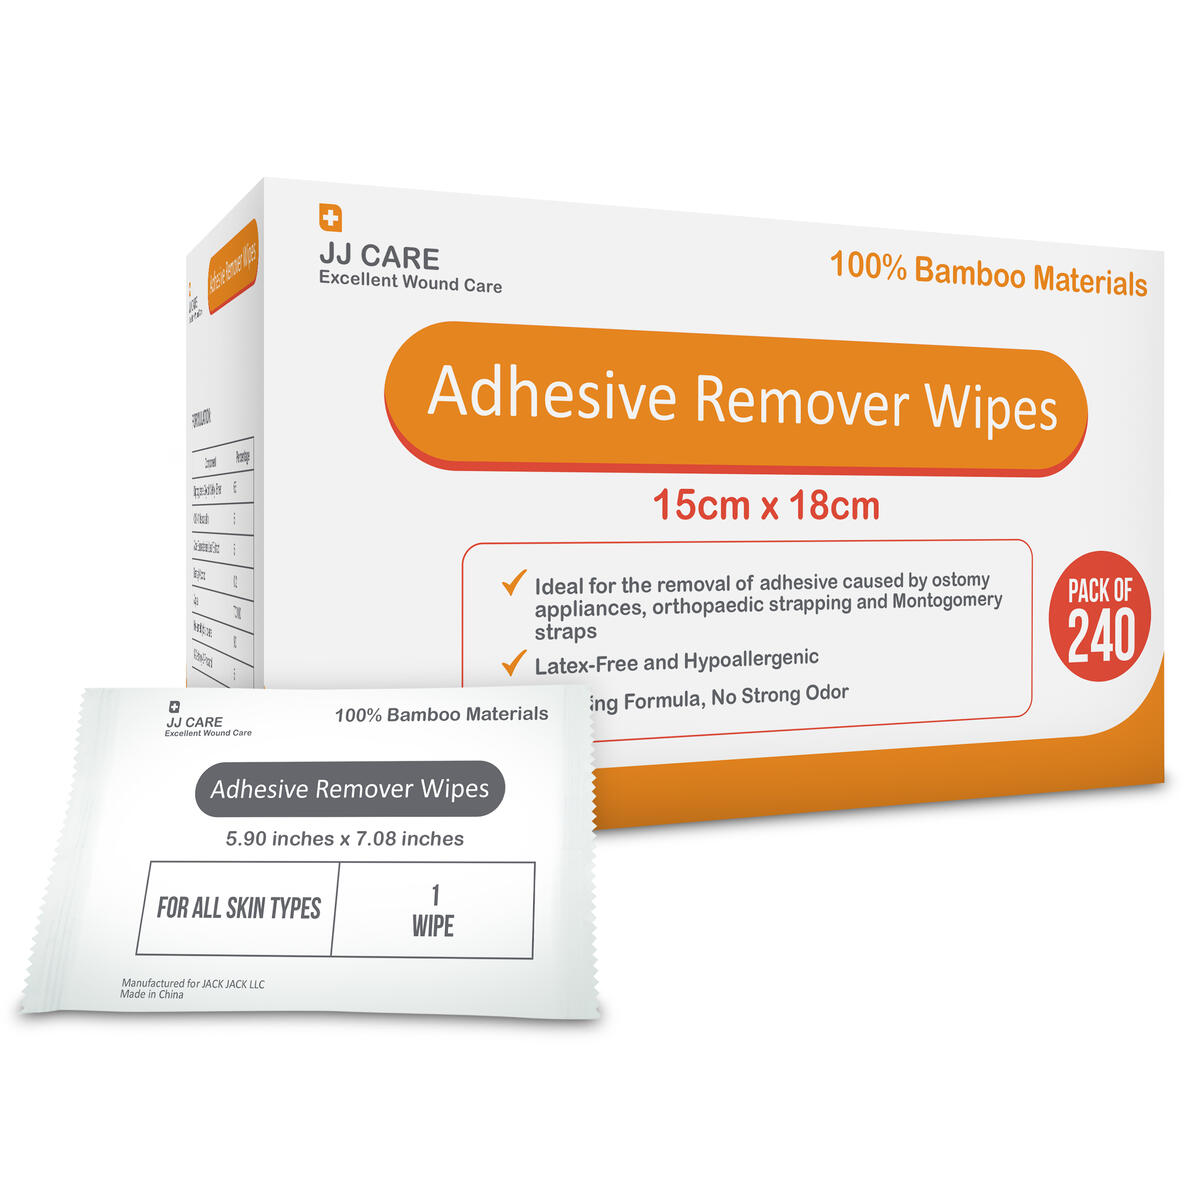 """[Pack of 240] Premium Adhesive Remover Wipes 6""""x7"""" Sting Free Adhesive Remover Wipes - Stoma Wipes - Medical Adhesive Remover Wipes- Ostomy, Colostomy Adhesive Remover Wipes for Skin"""